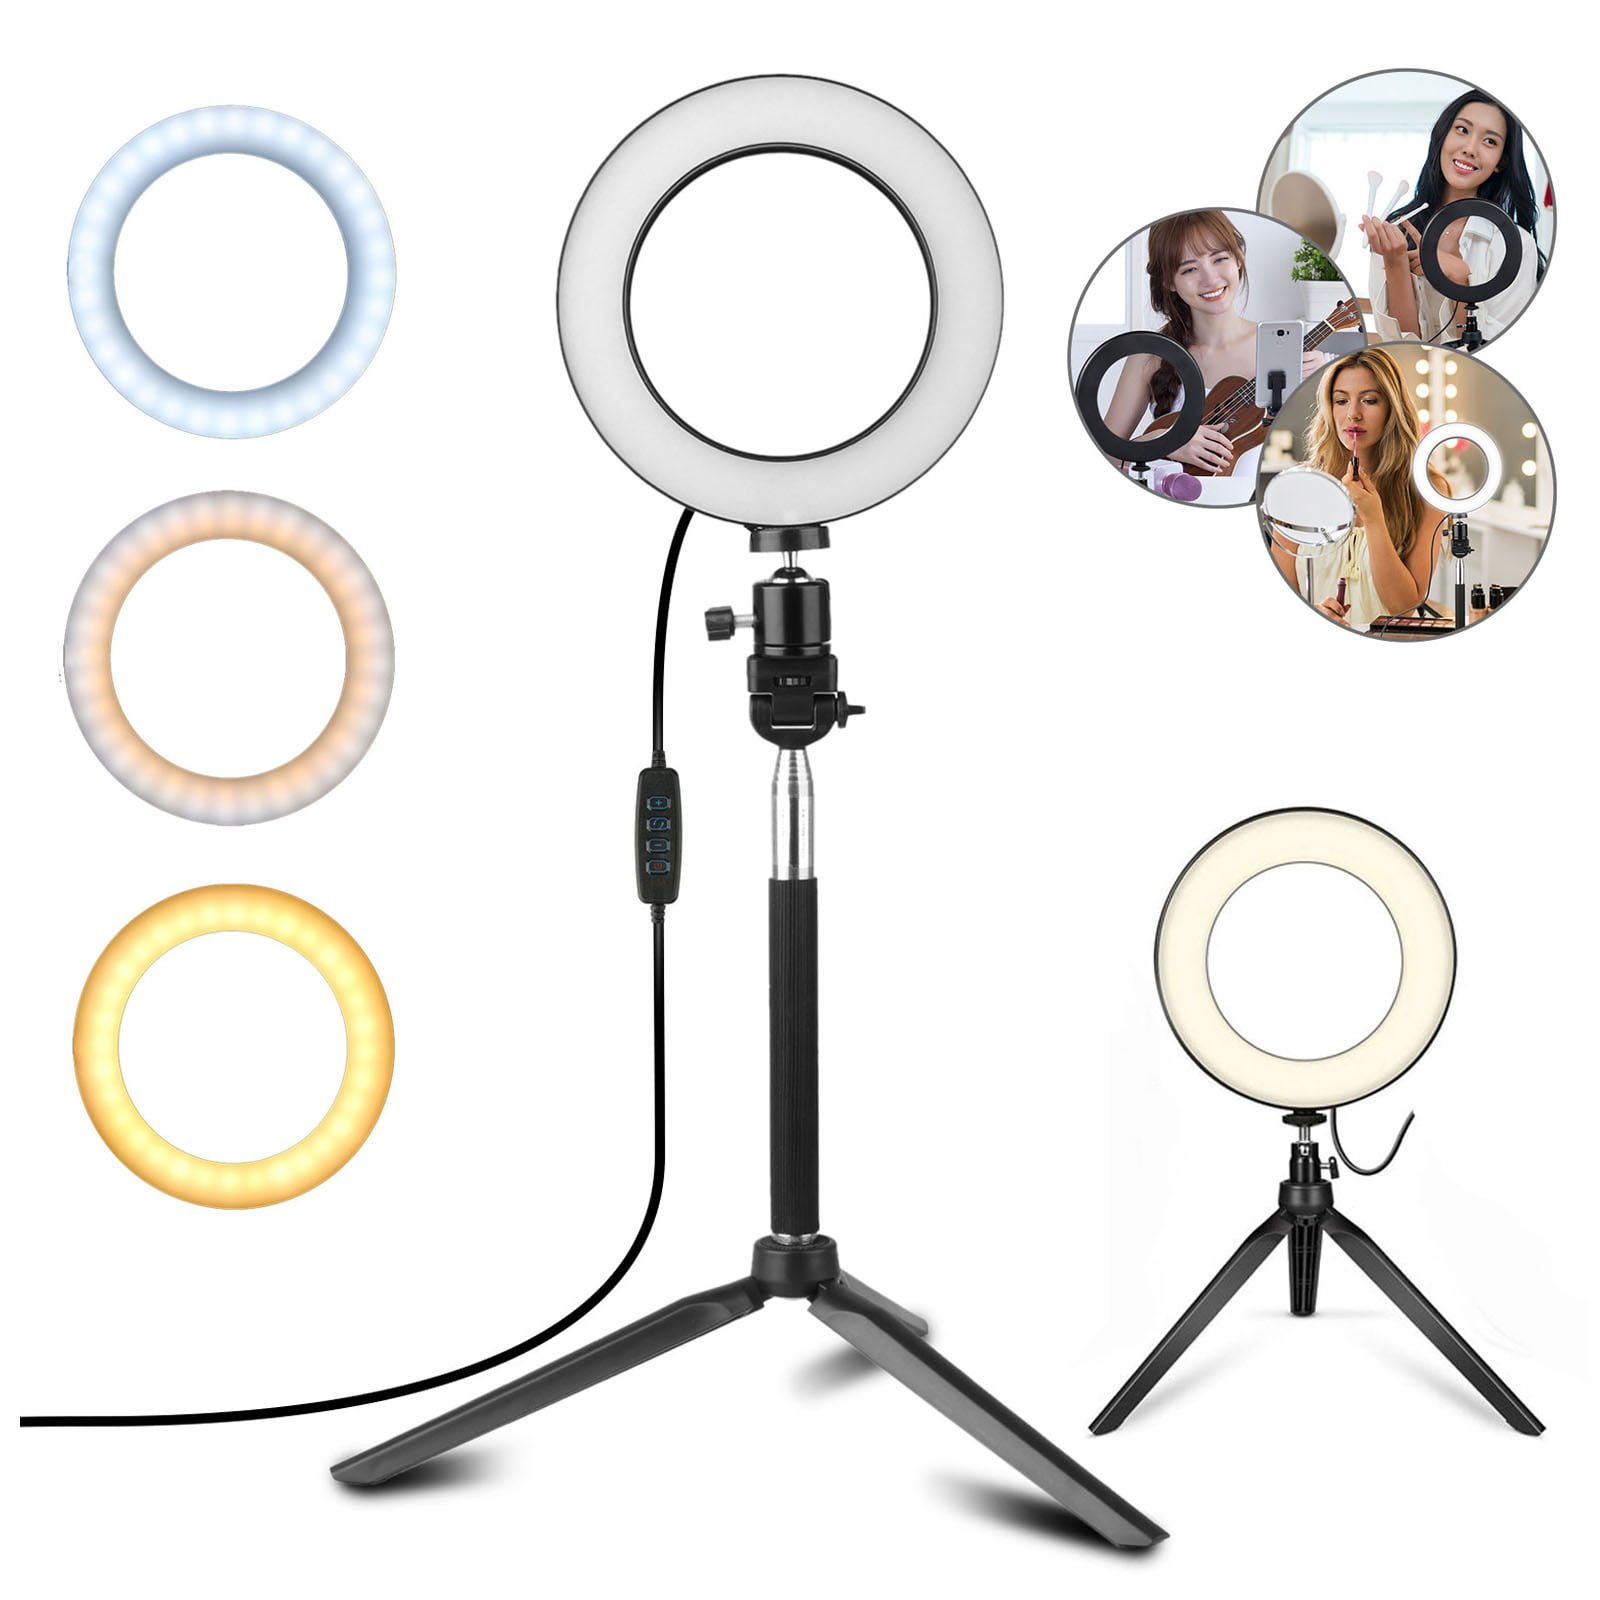 Live Stream Selfie Ring Light 30cm // 12inch Ring Light Live Fill Light Mobile Phone Bracket Led Ringlight Flashes Anchor Self-timer With Photography Tripod for Selfie YouTube Vlog Ca Makeup